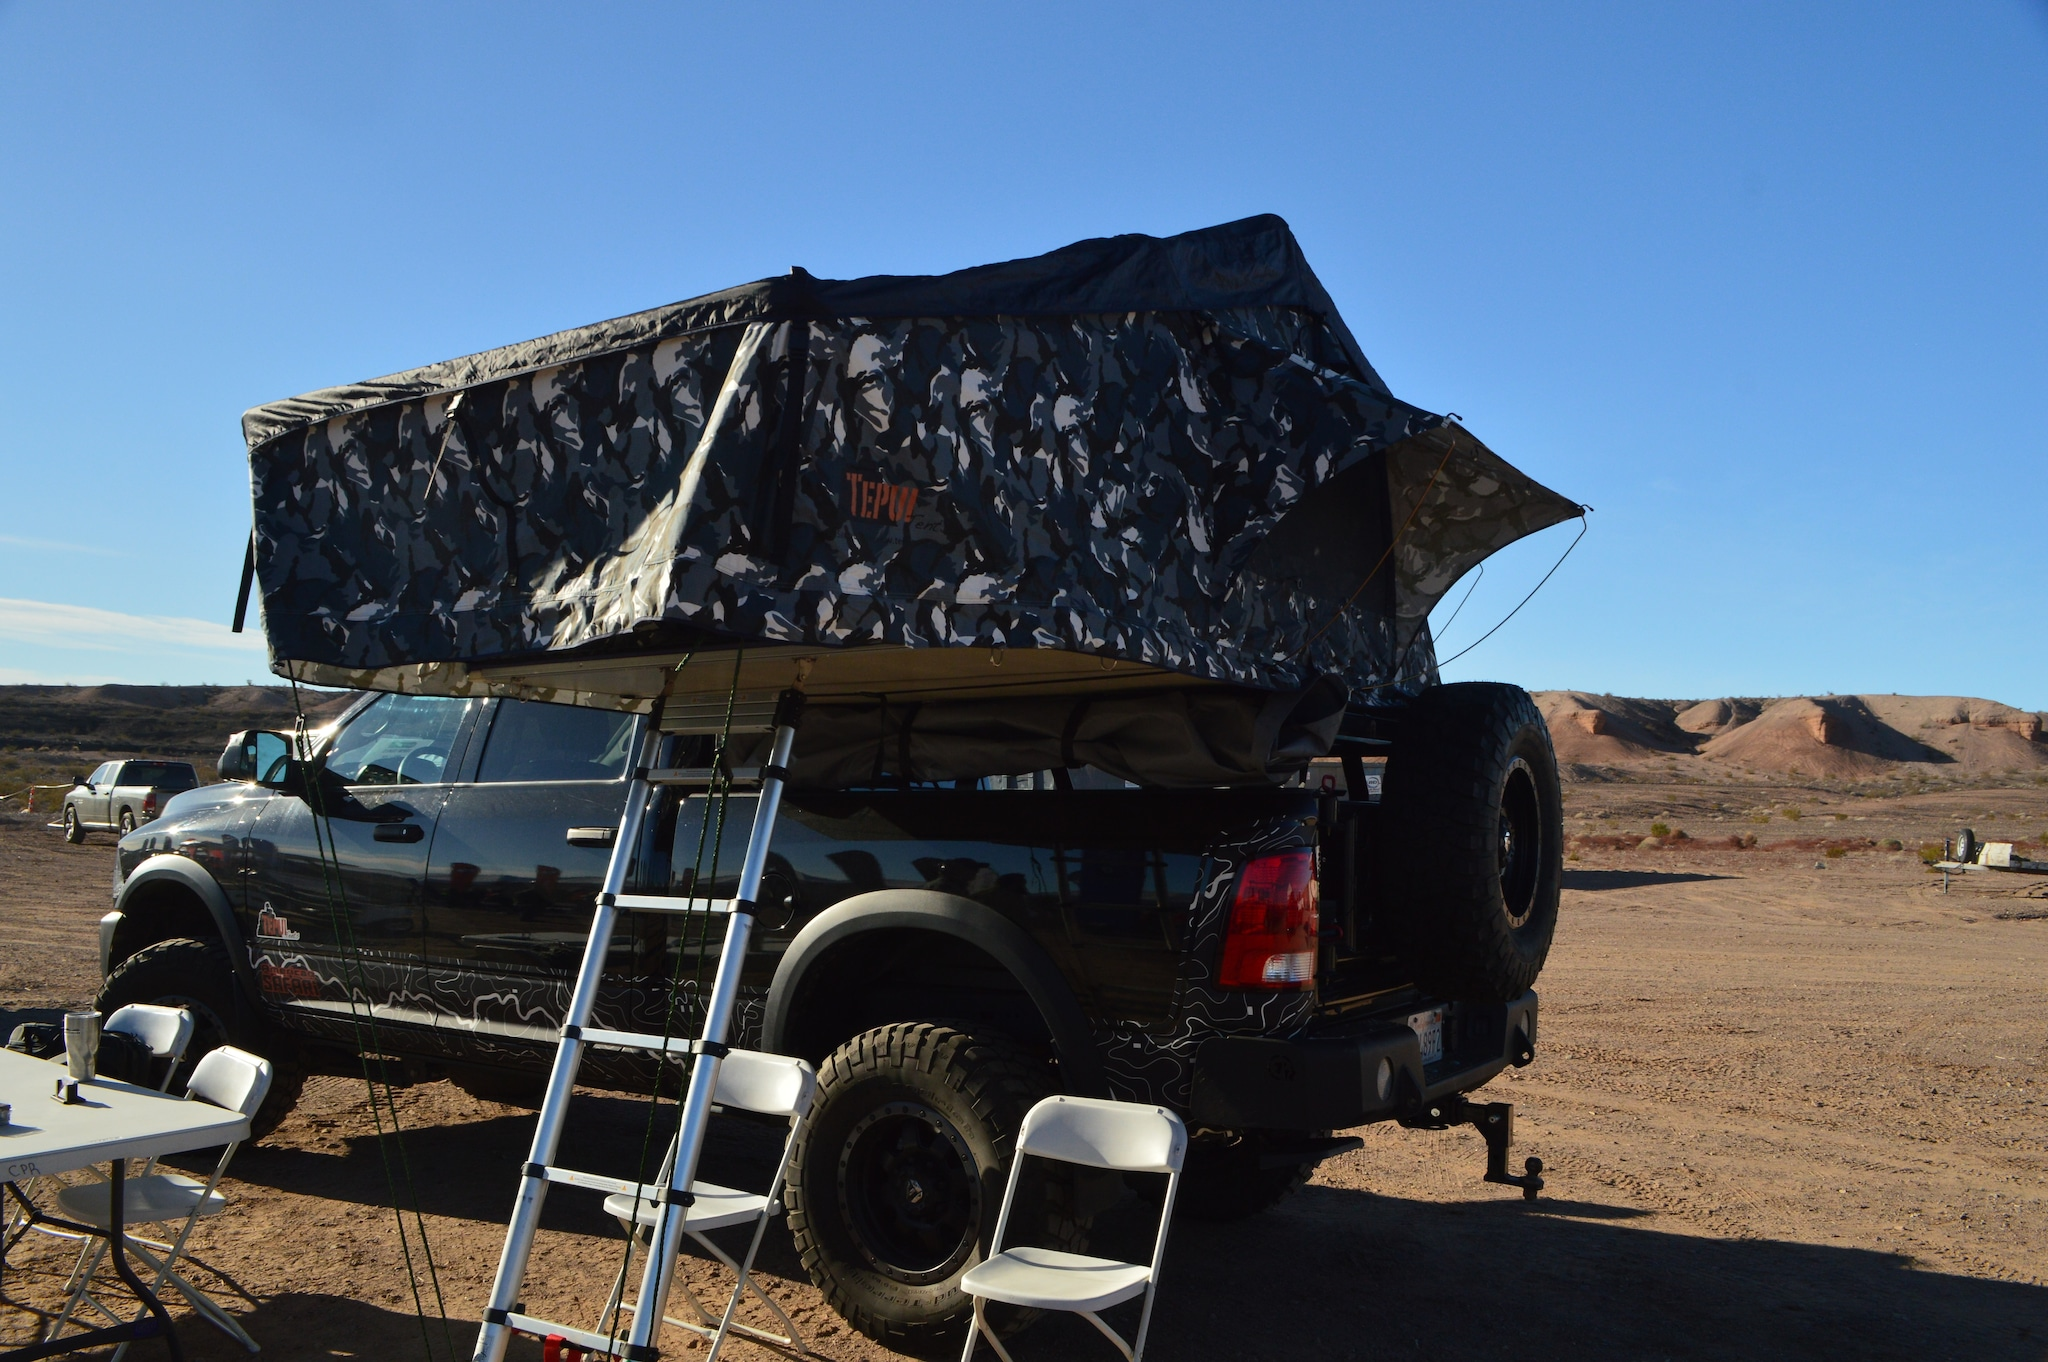 Tepui's Rooftop Tent system appeals to adventurous hunters who enjoy quick spike camps in remote locations. The King sized model shown here easily holds 2-3 hunters plus gear, and quickly folds down flat for traveling. (Photo: Kristin Alberts/Guns.com)